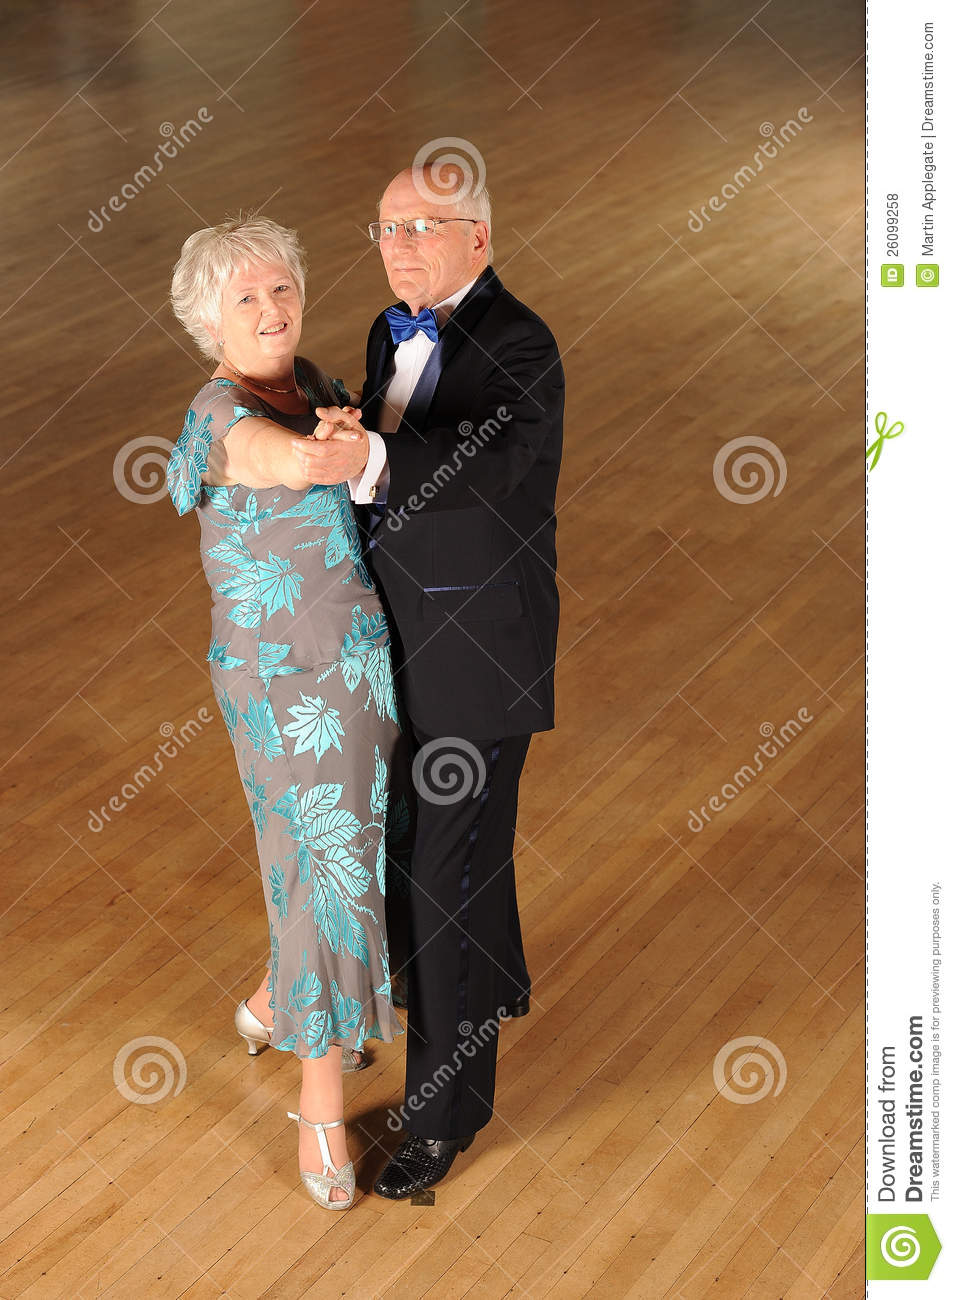 Senior Couple Ballroom Dancing Stock Image Suit Looking